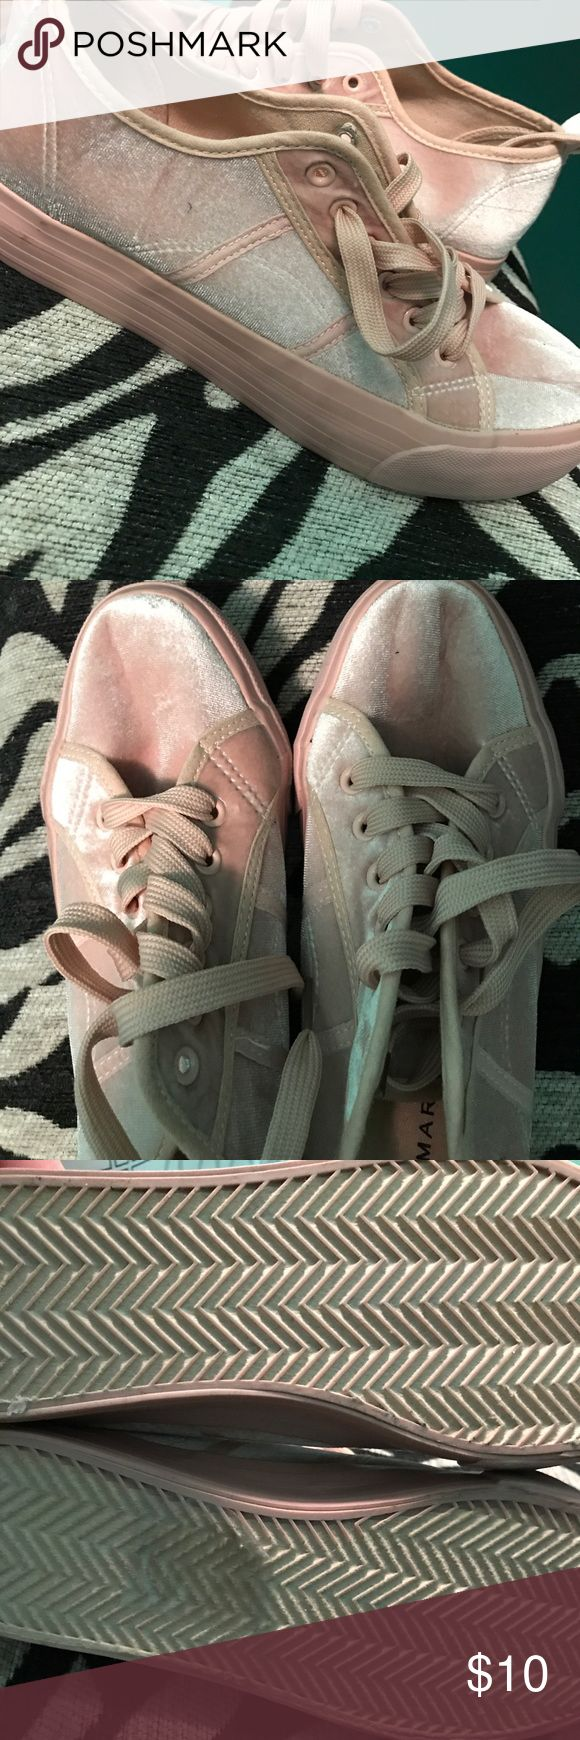 Pink velvet shoes Pink, velvet shoes.  Run a little big, flimsy in the front. Old school look! Love it when trying to dress throwback-ish. primark Shoes Sneakers